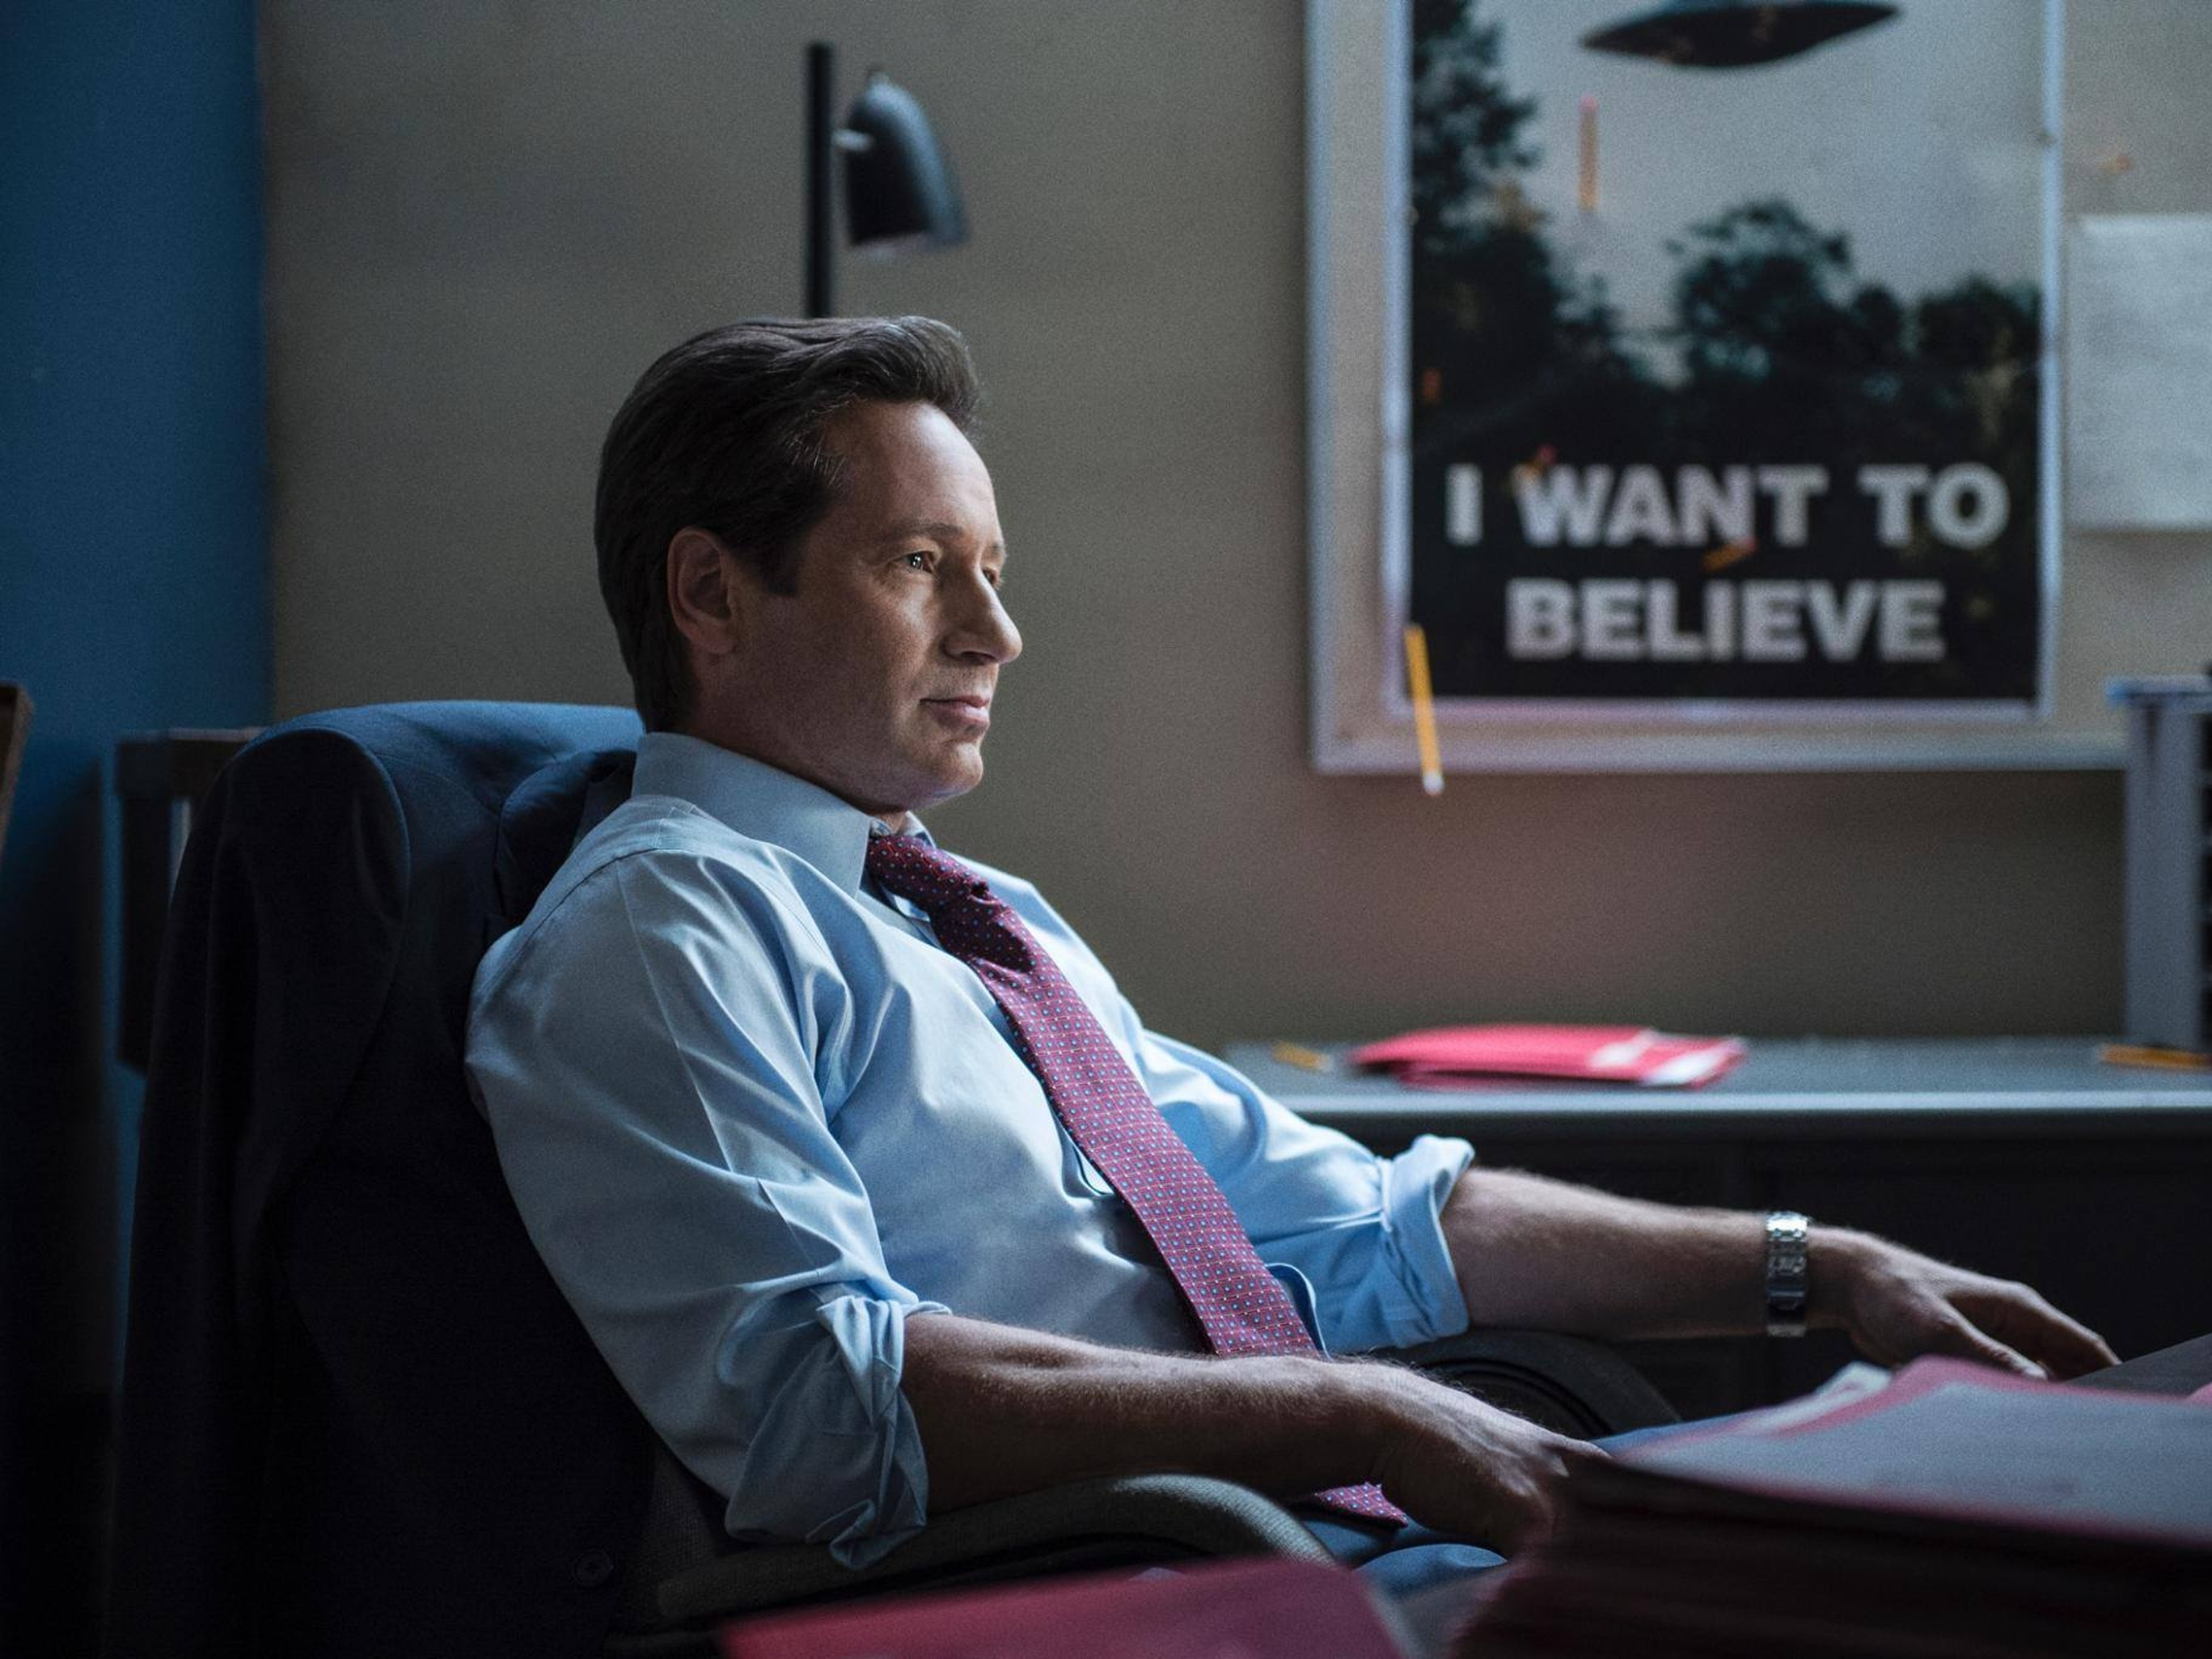 X-Files, Episode 3, Season 1, Were-Monster, Mulder, Scully